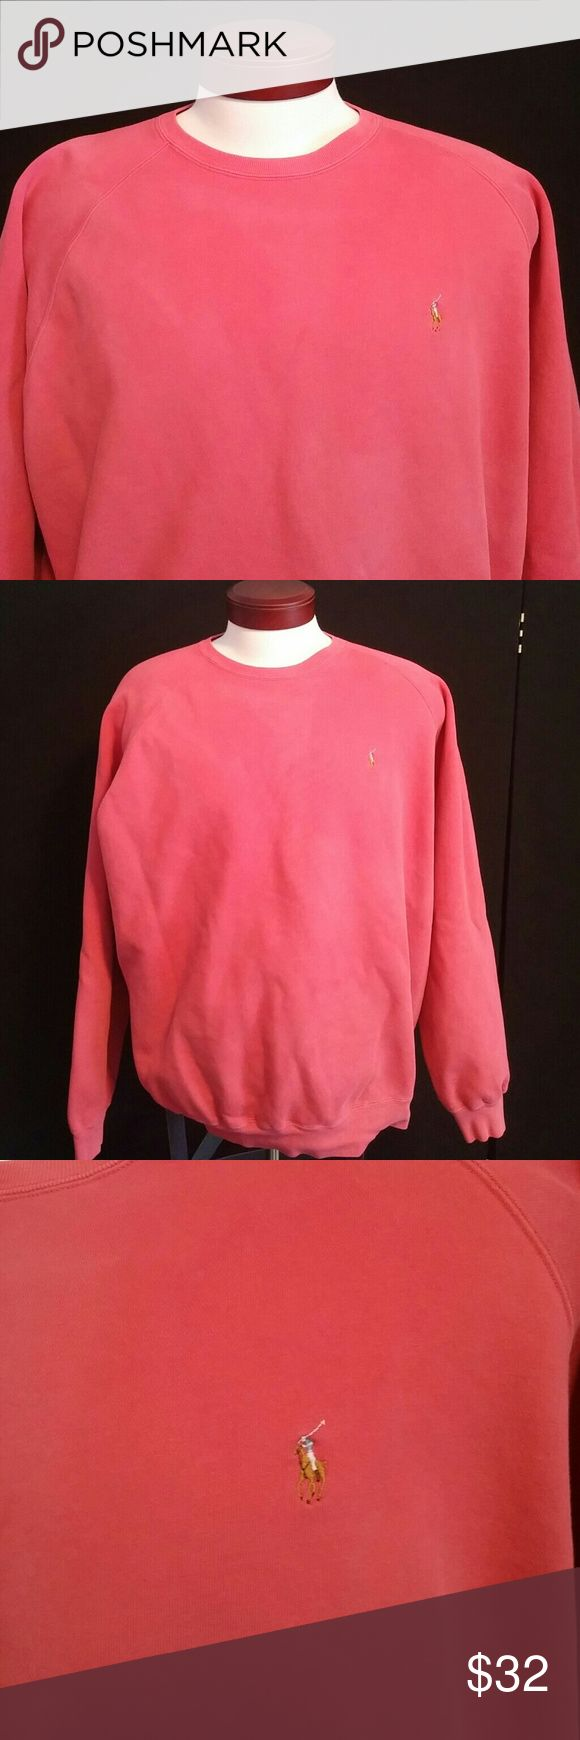 Men's Ralph Lauren polo sweatshirt Very nice distressed Ralph Lauren polo sweatshirt. Pink / salmon color. Perfect for Summer Nights. This sweatshirt has some perfect worn fade spots that make it look even cooler than it is. They are very faint and make it look a little distressed and nice. Vintage??? Polo by Ralph Lauren Shirts